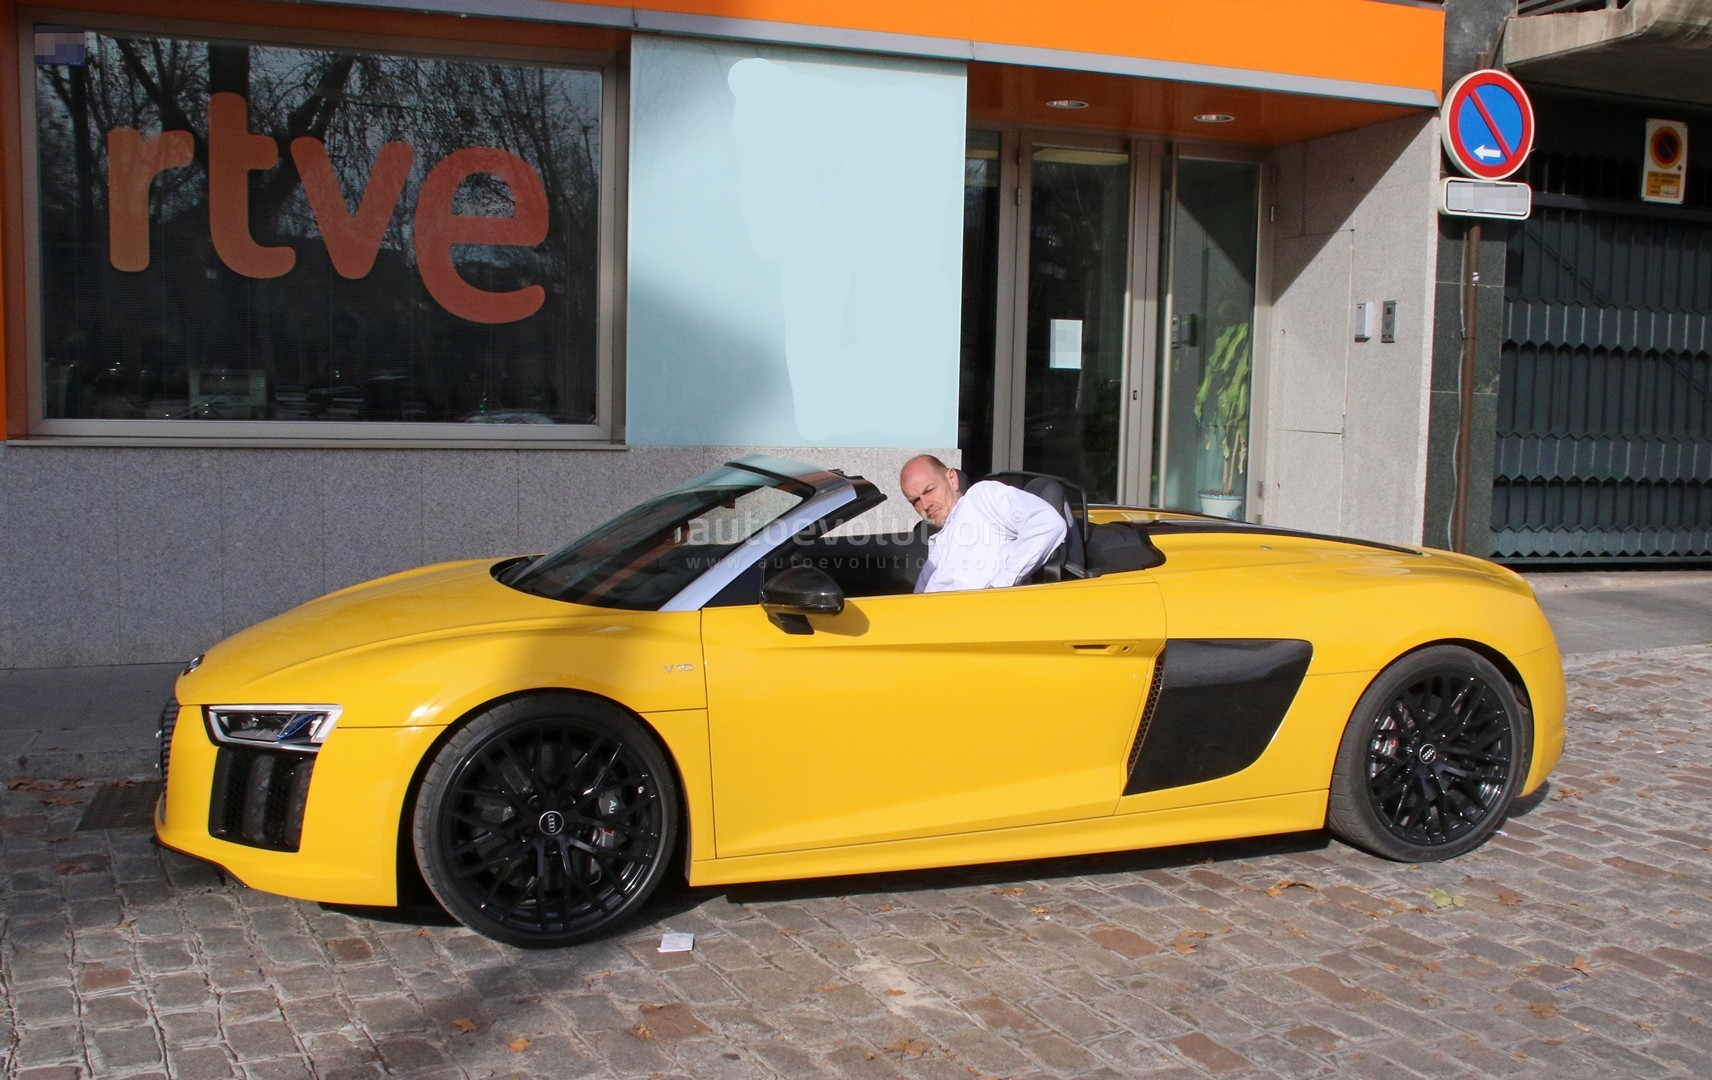 R8 v10 spyder caught whoops someone left it out in the open